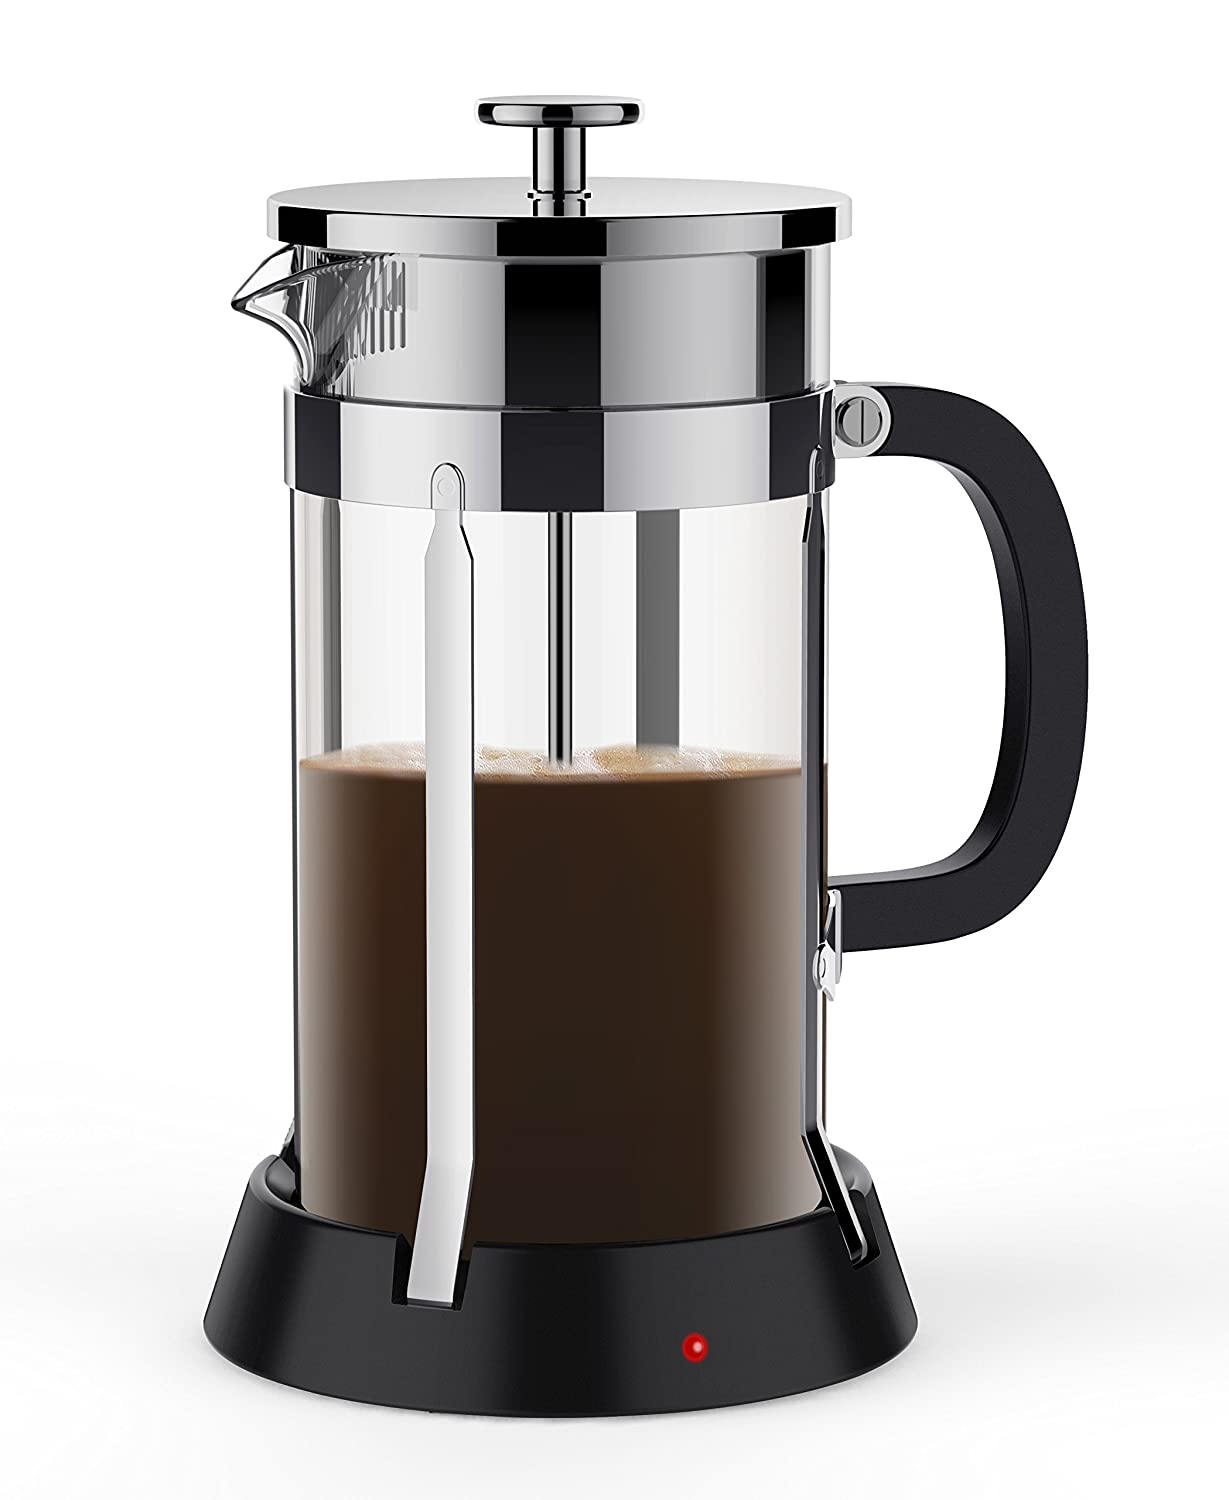 brevo 8 cup french press coffee tea maker with 35w electric warmer sliver pot ebay. Black Bedroom Furniture Sets. Home Design Ideas